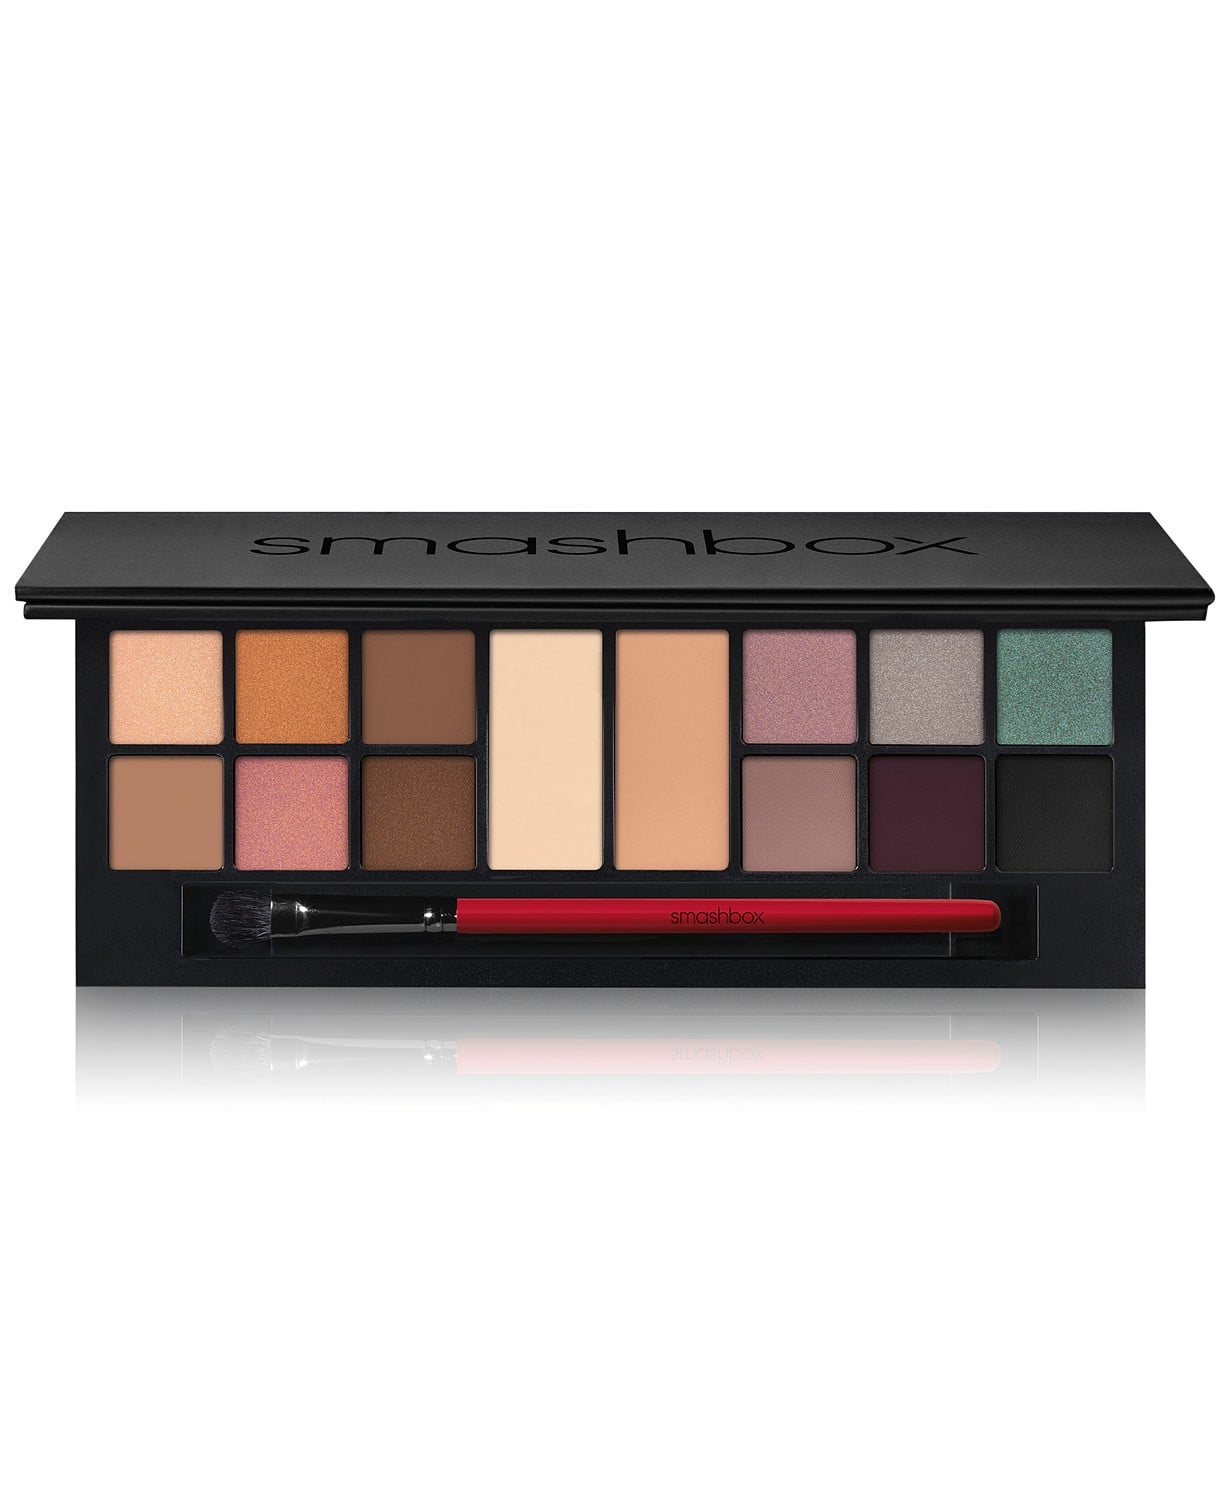 Smashbox The Love Edit: Romantic Eye Shadow Palette $20, Men's 5-Pc. Dopp Kit Set $63.75 (includes 4 full size products + case), More + free store pickup at Macys